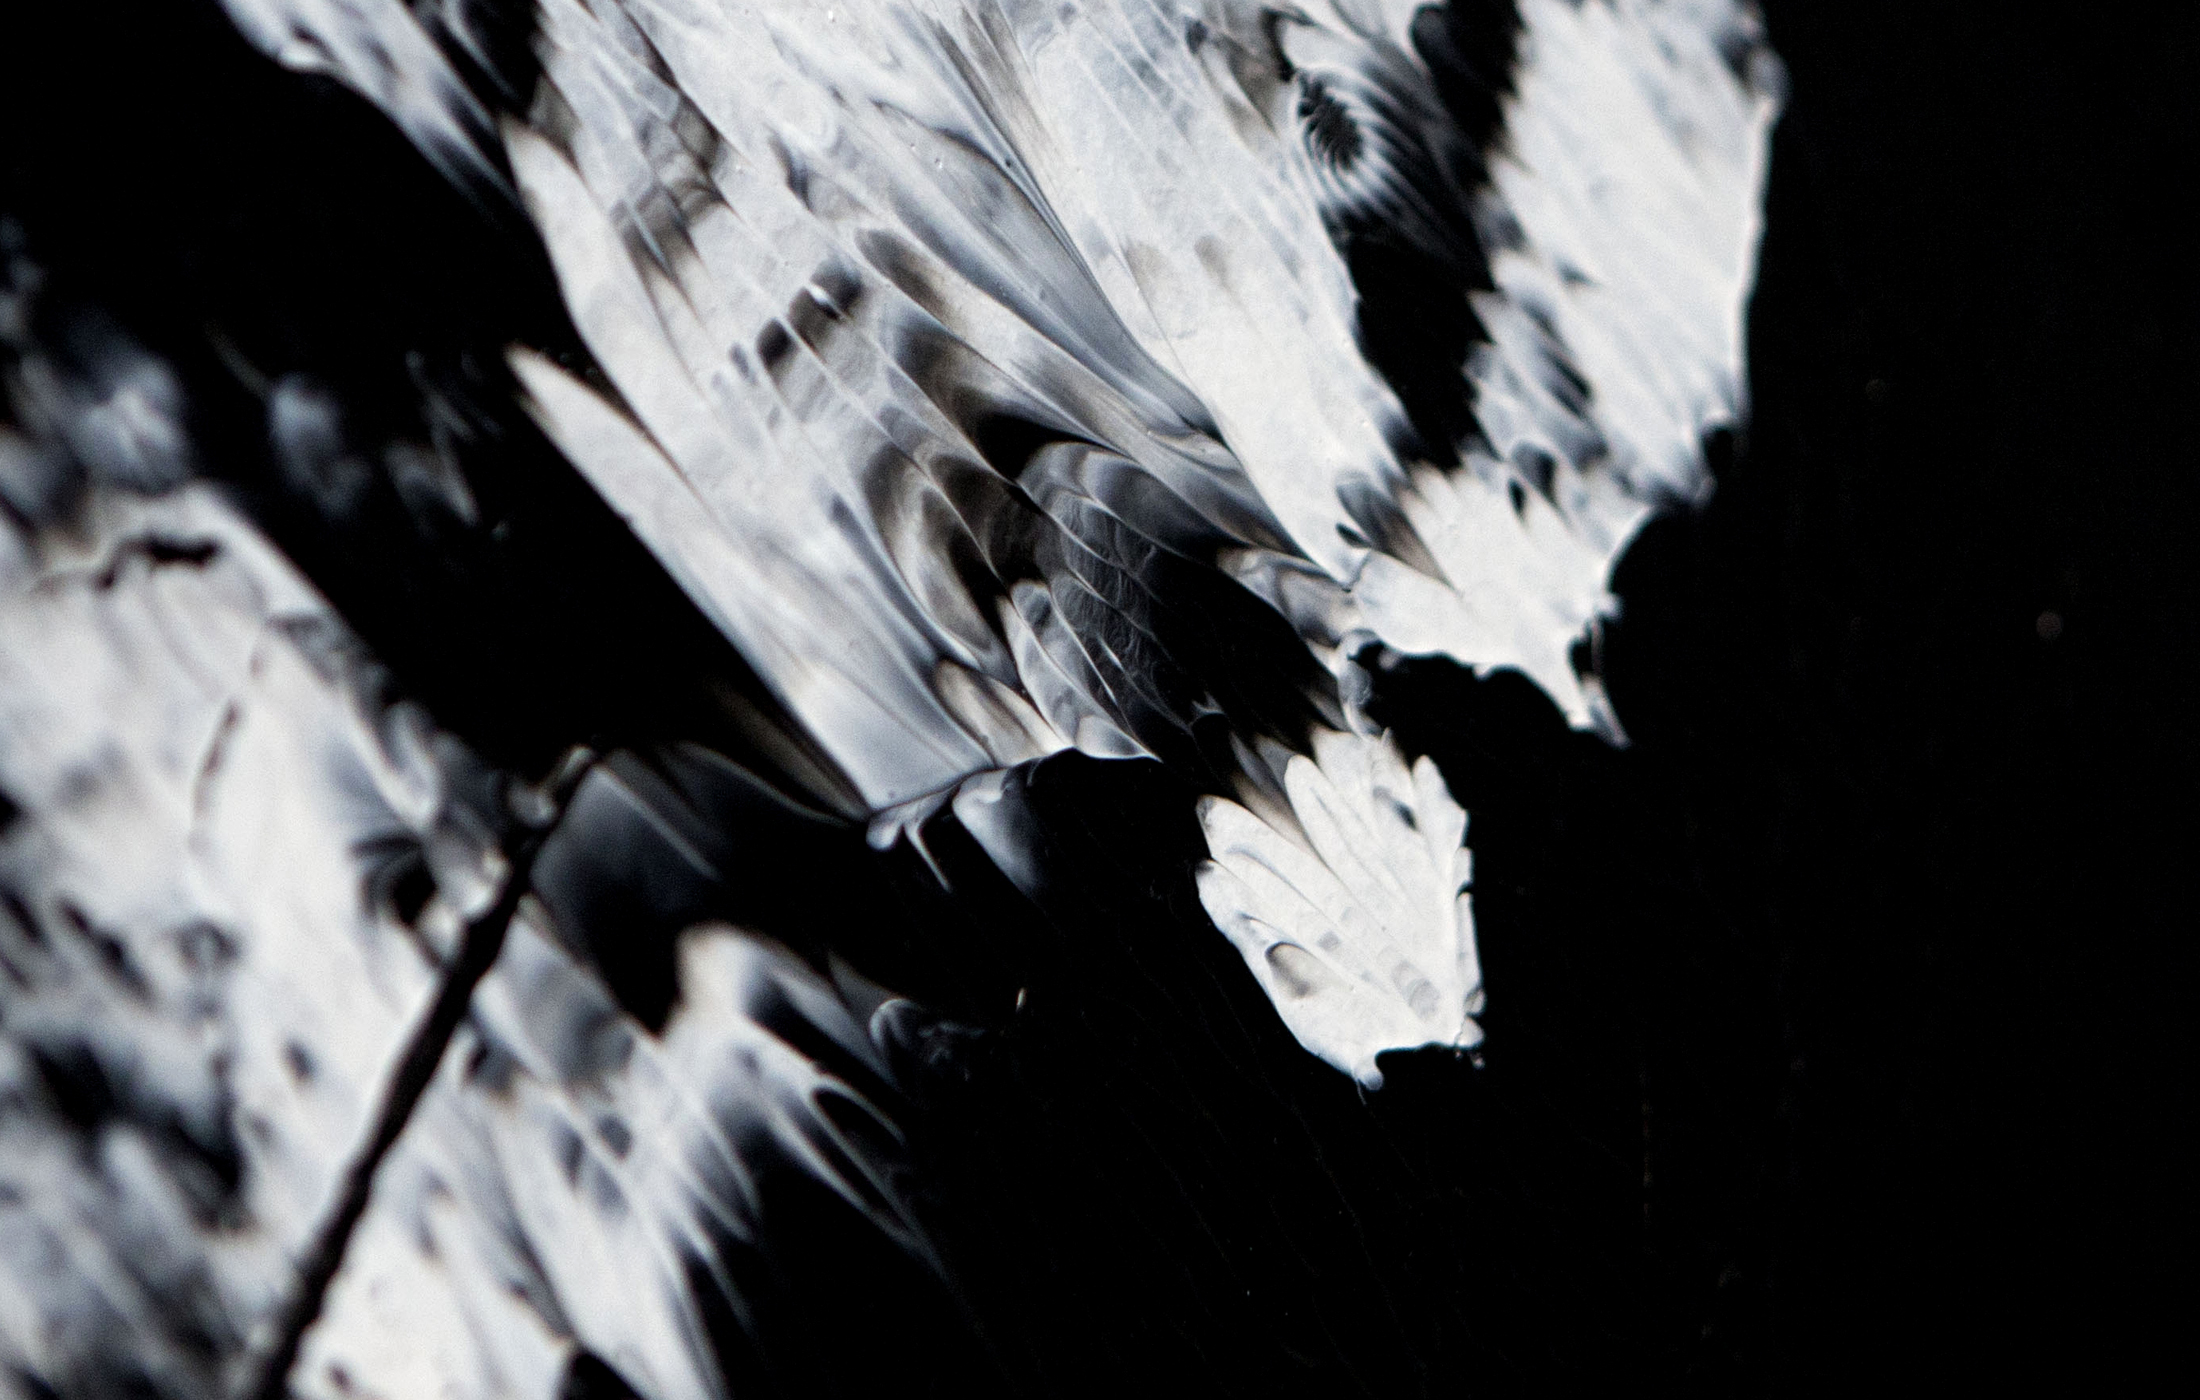 Agathe Toman Faithful Marilyn Painting Paint acrylic abstract french artist arts abstract contemporary contemporain fine black white modern gallery paris biarritz France